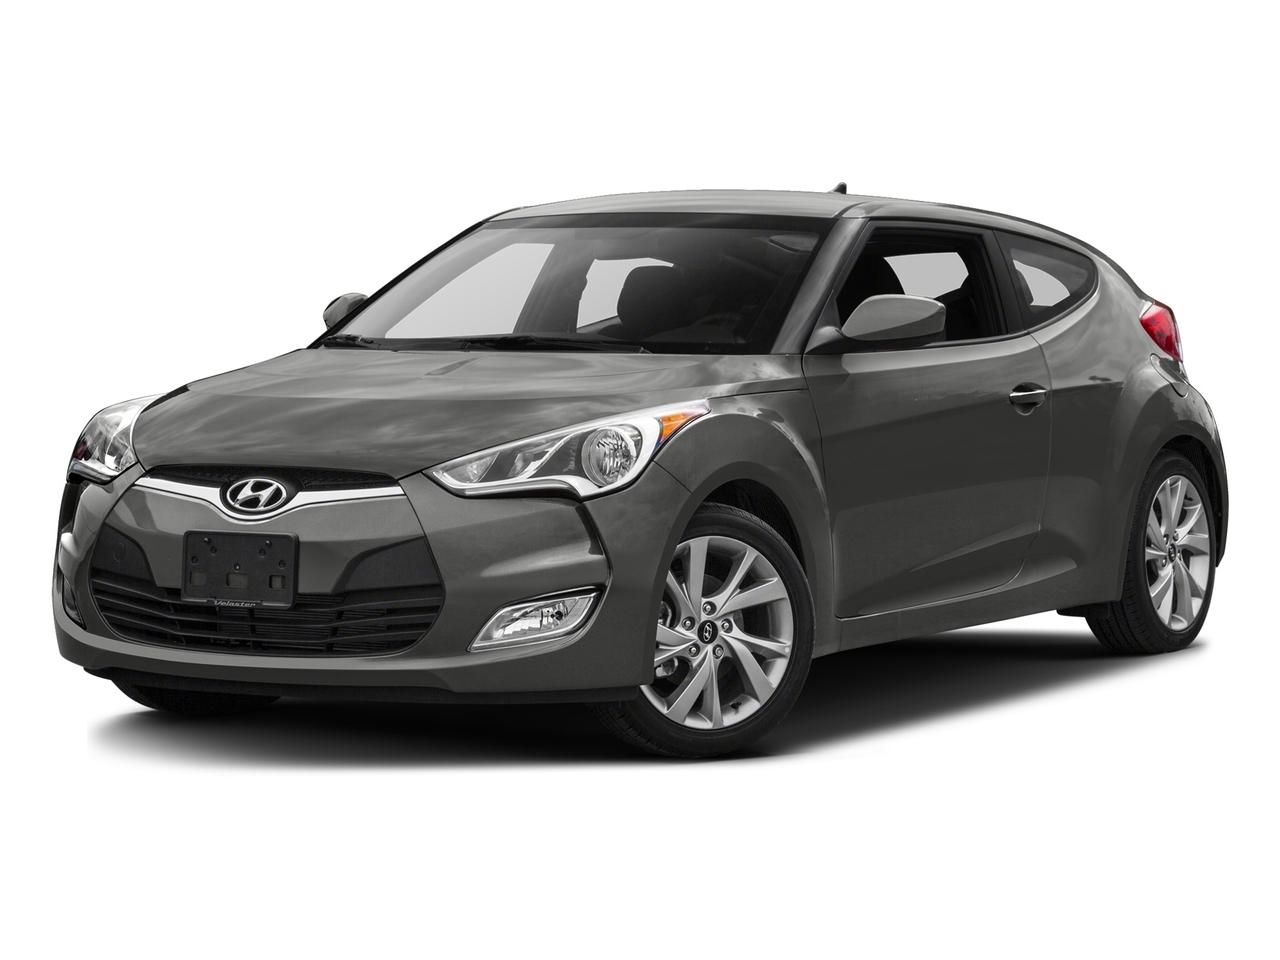 2016 Hyundai Veloster Vehicle Photo in San Antonio, TX 78230